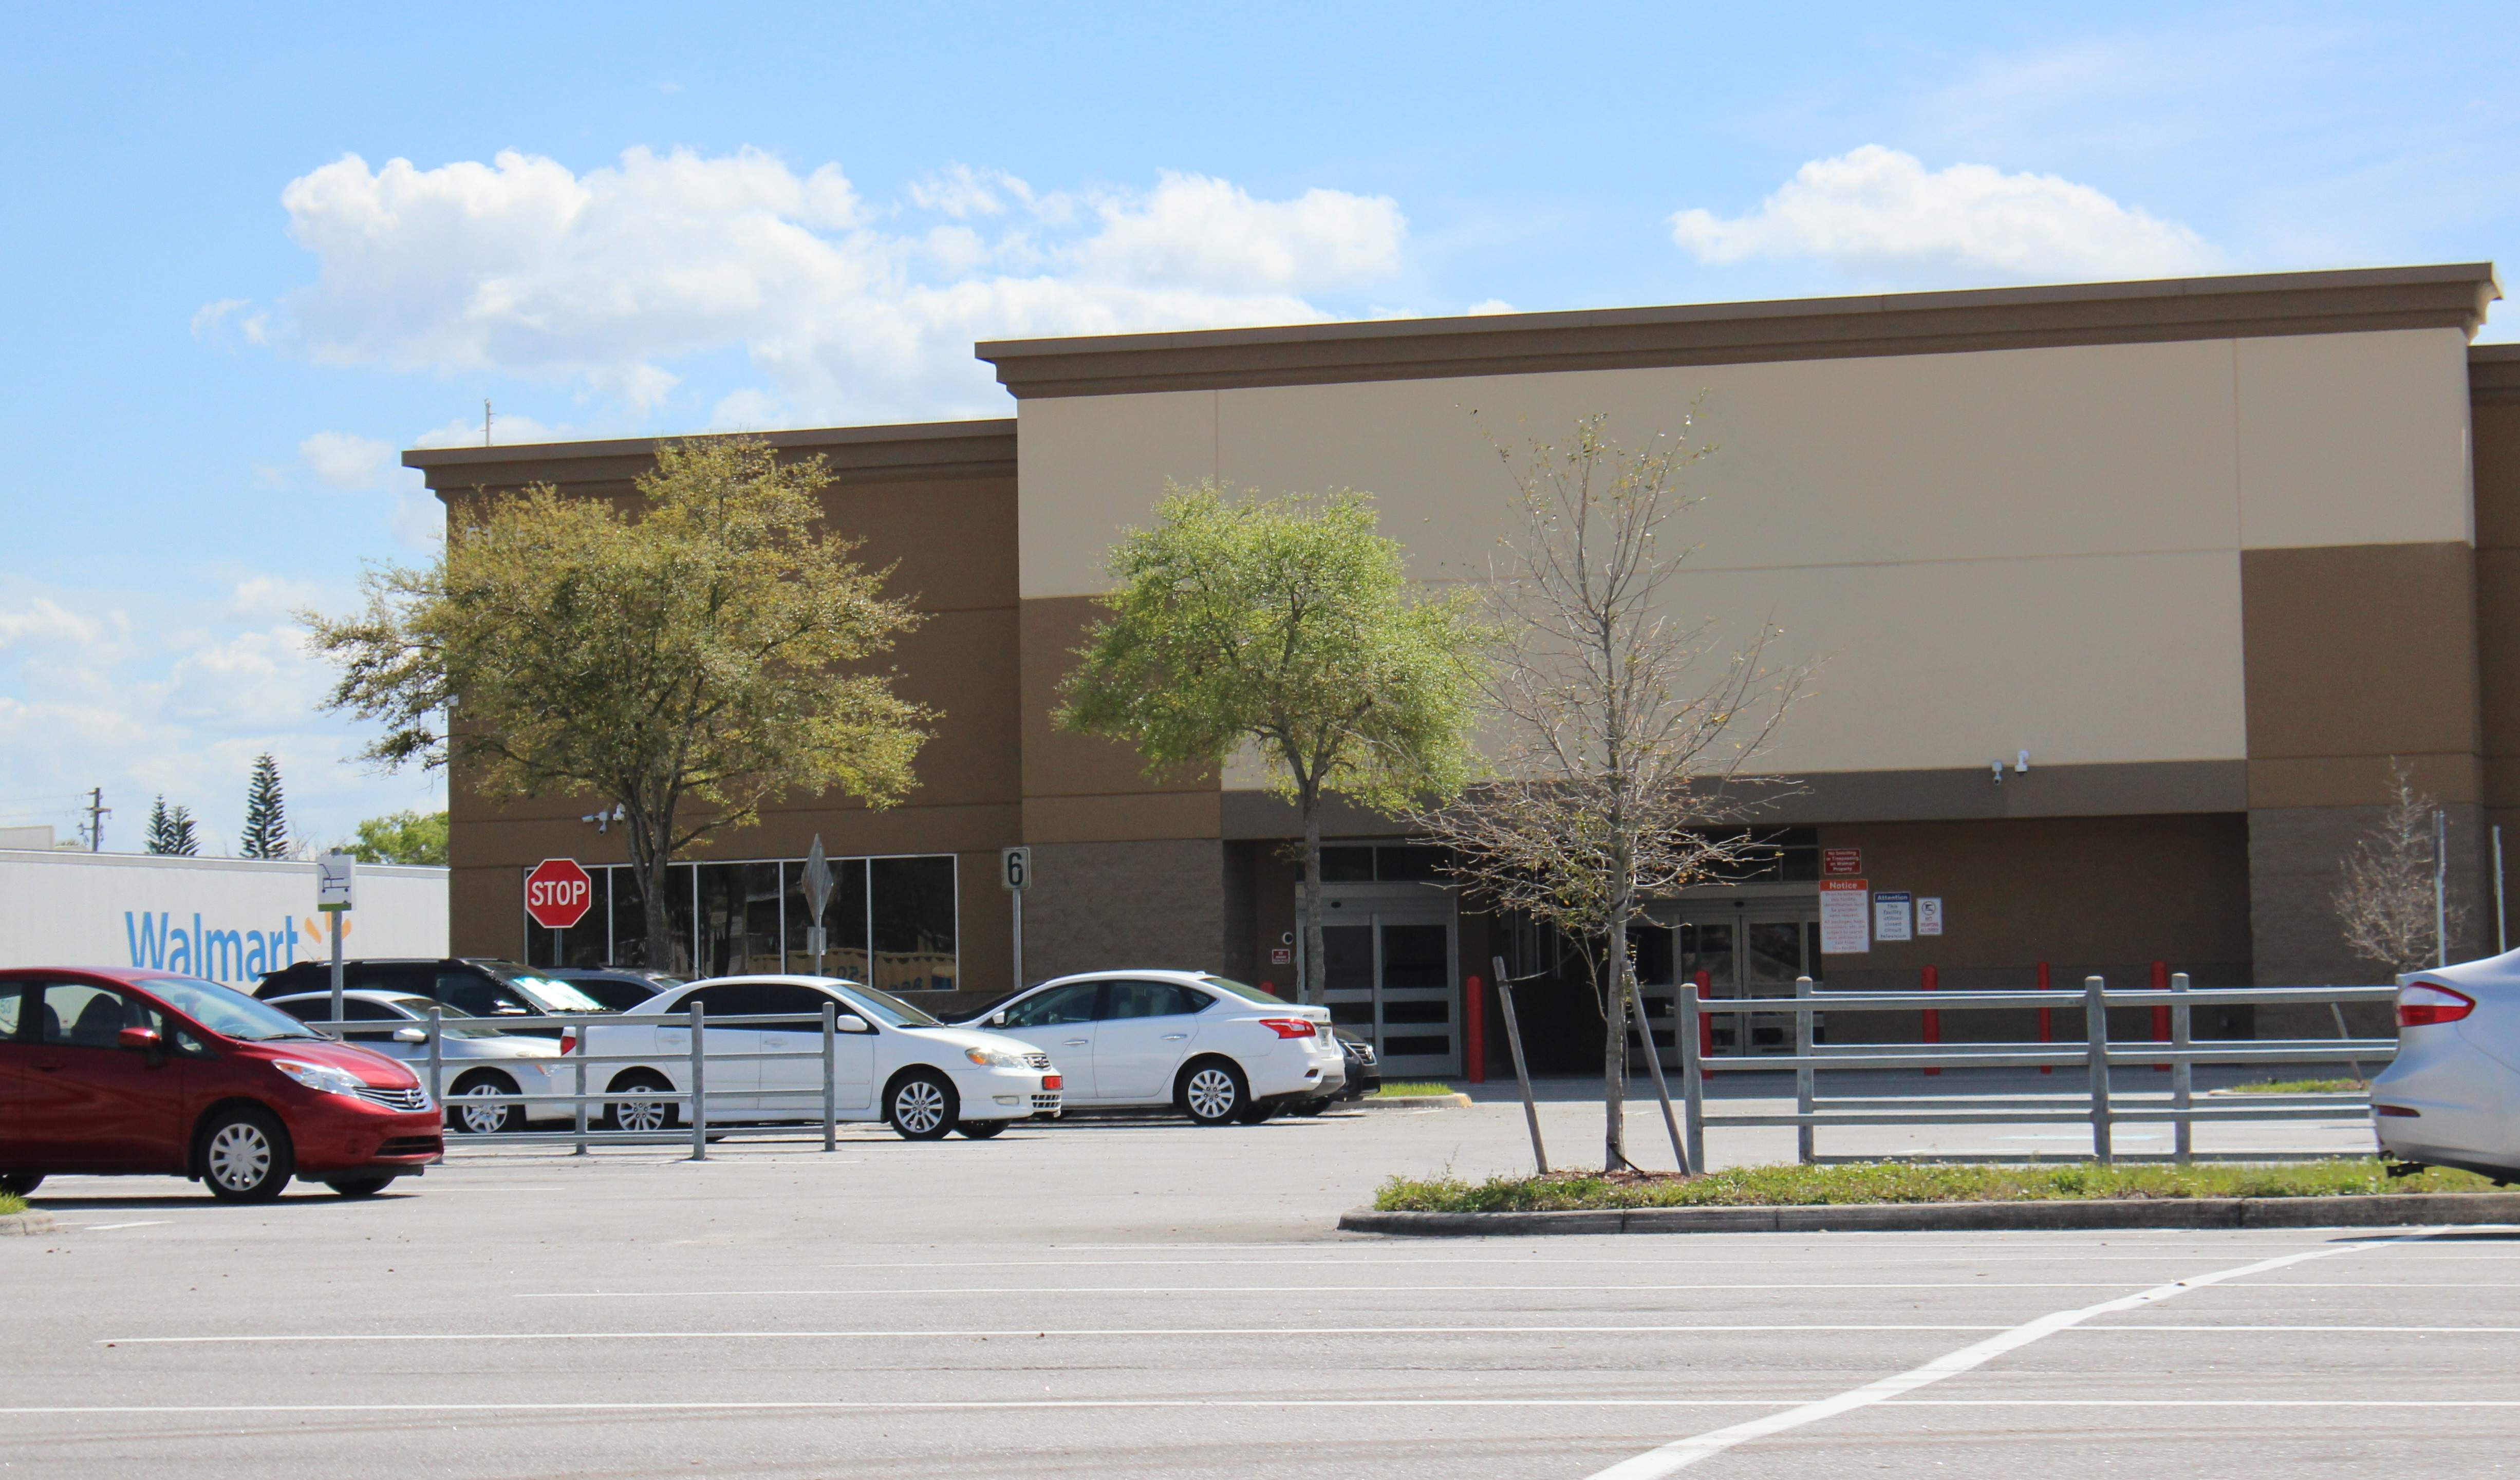 How a closed Tampa Sam's Club became a strategic weapon to